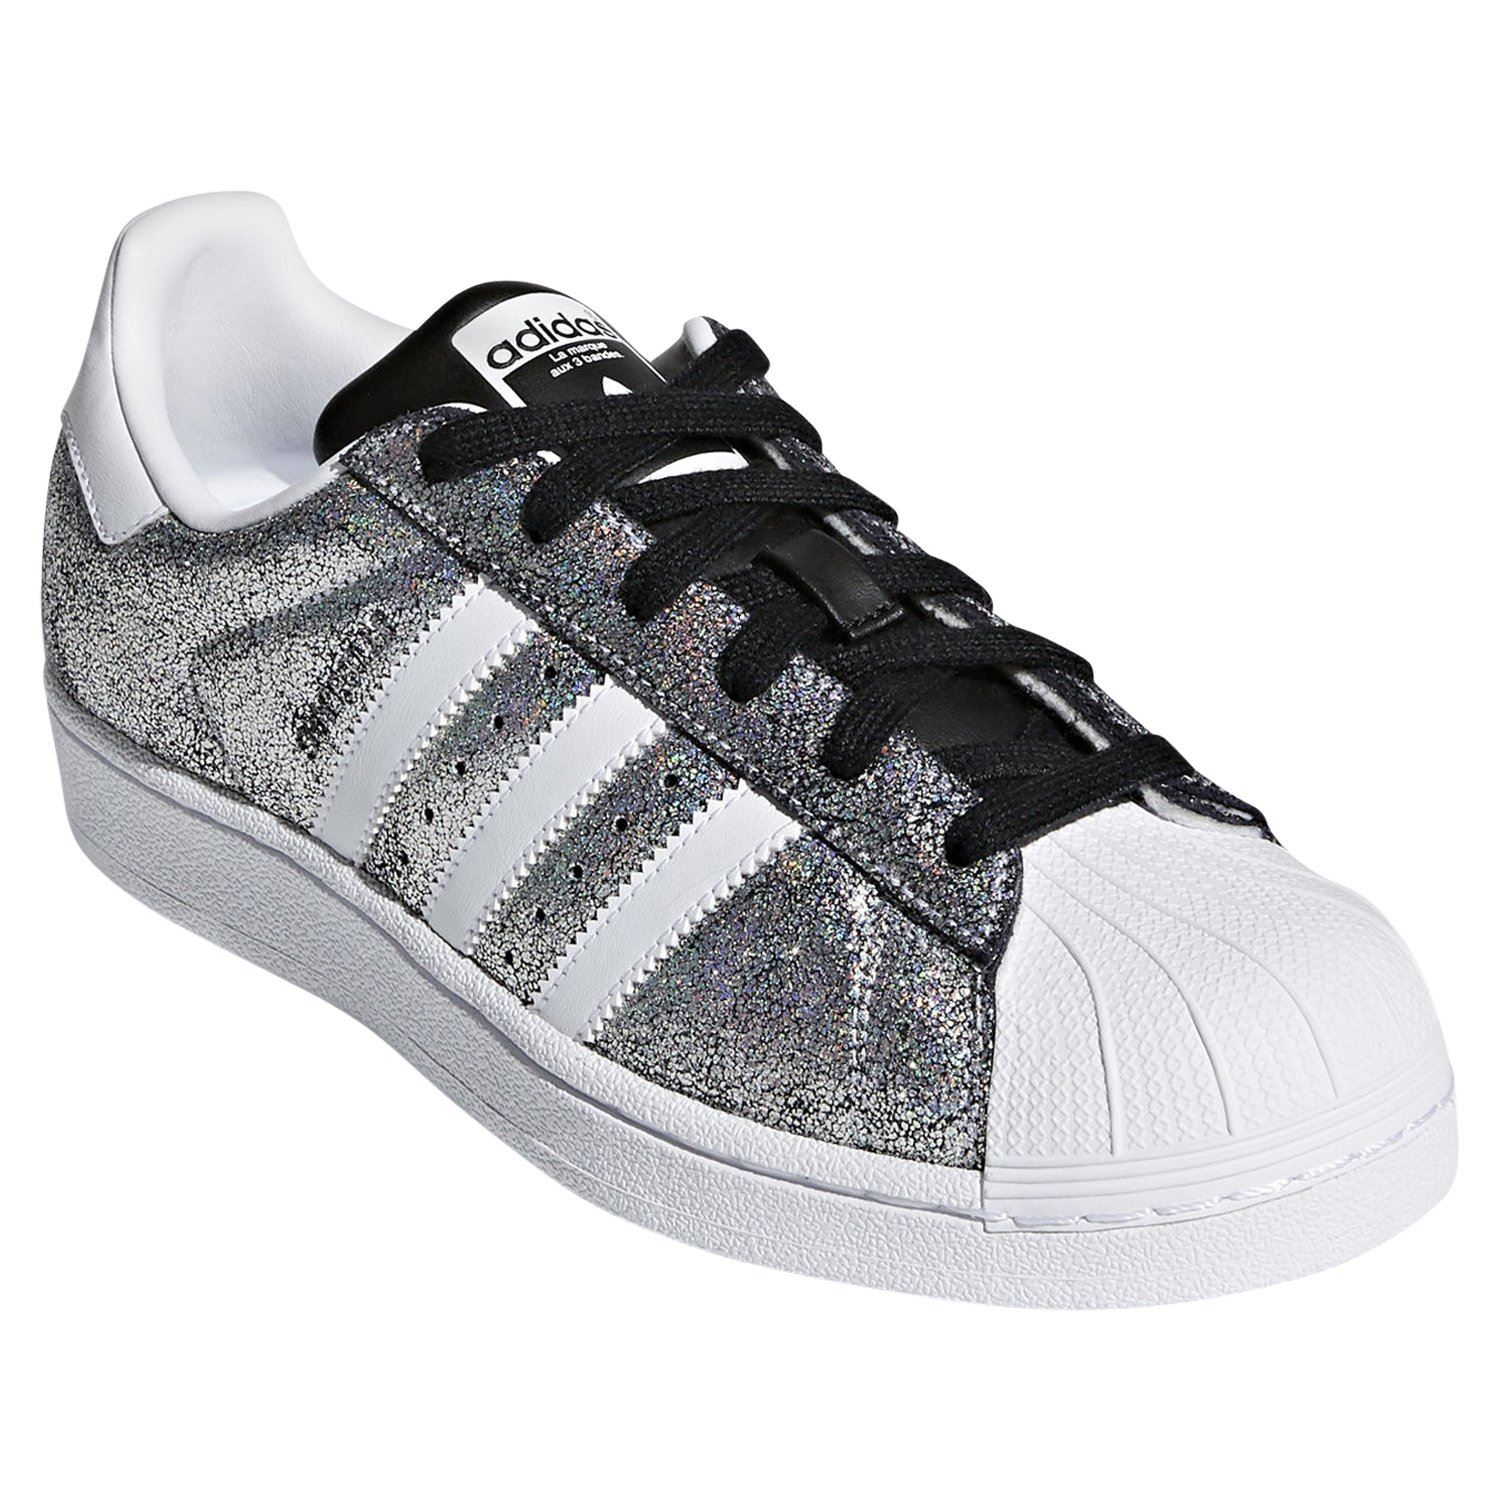 Details about adidas ORIGINALS WOMEN'S SUPERSTAR TRAINERS METALLIC SHINY SNEAKERS SHOES